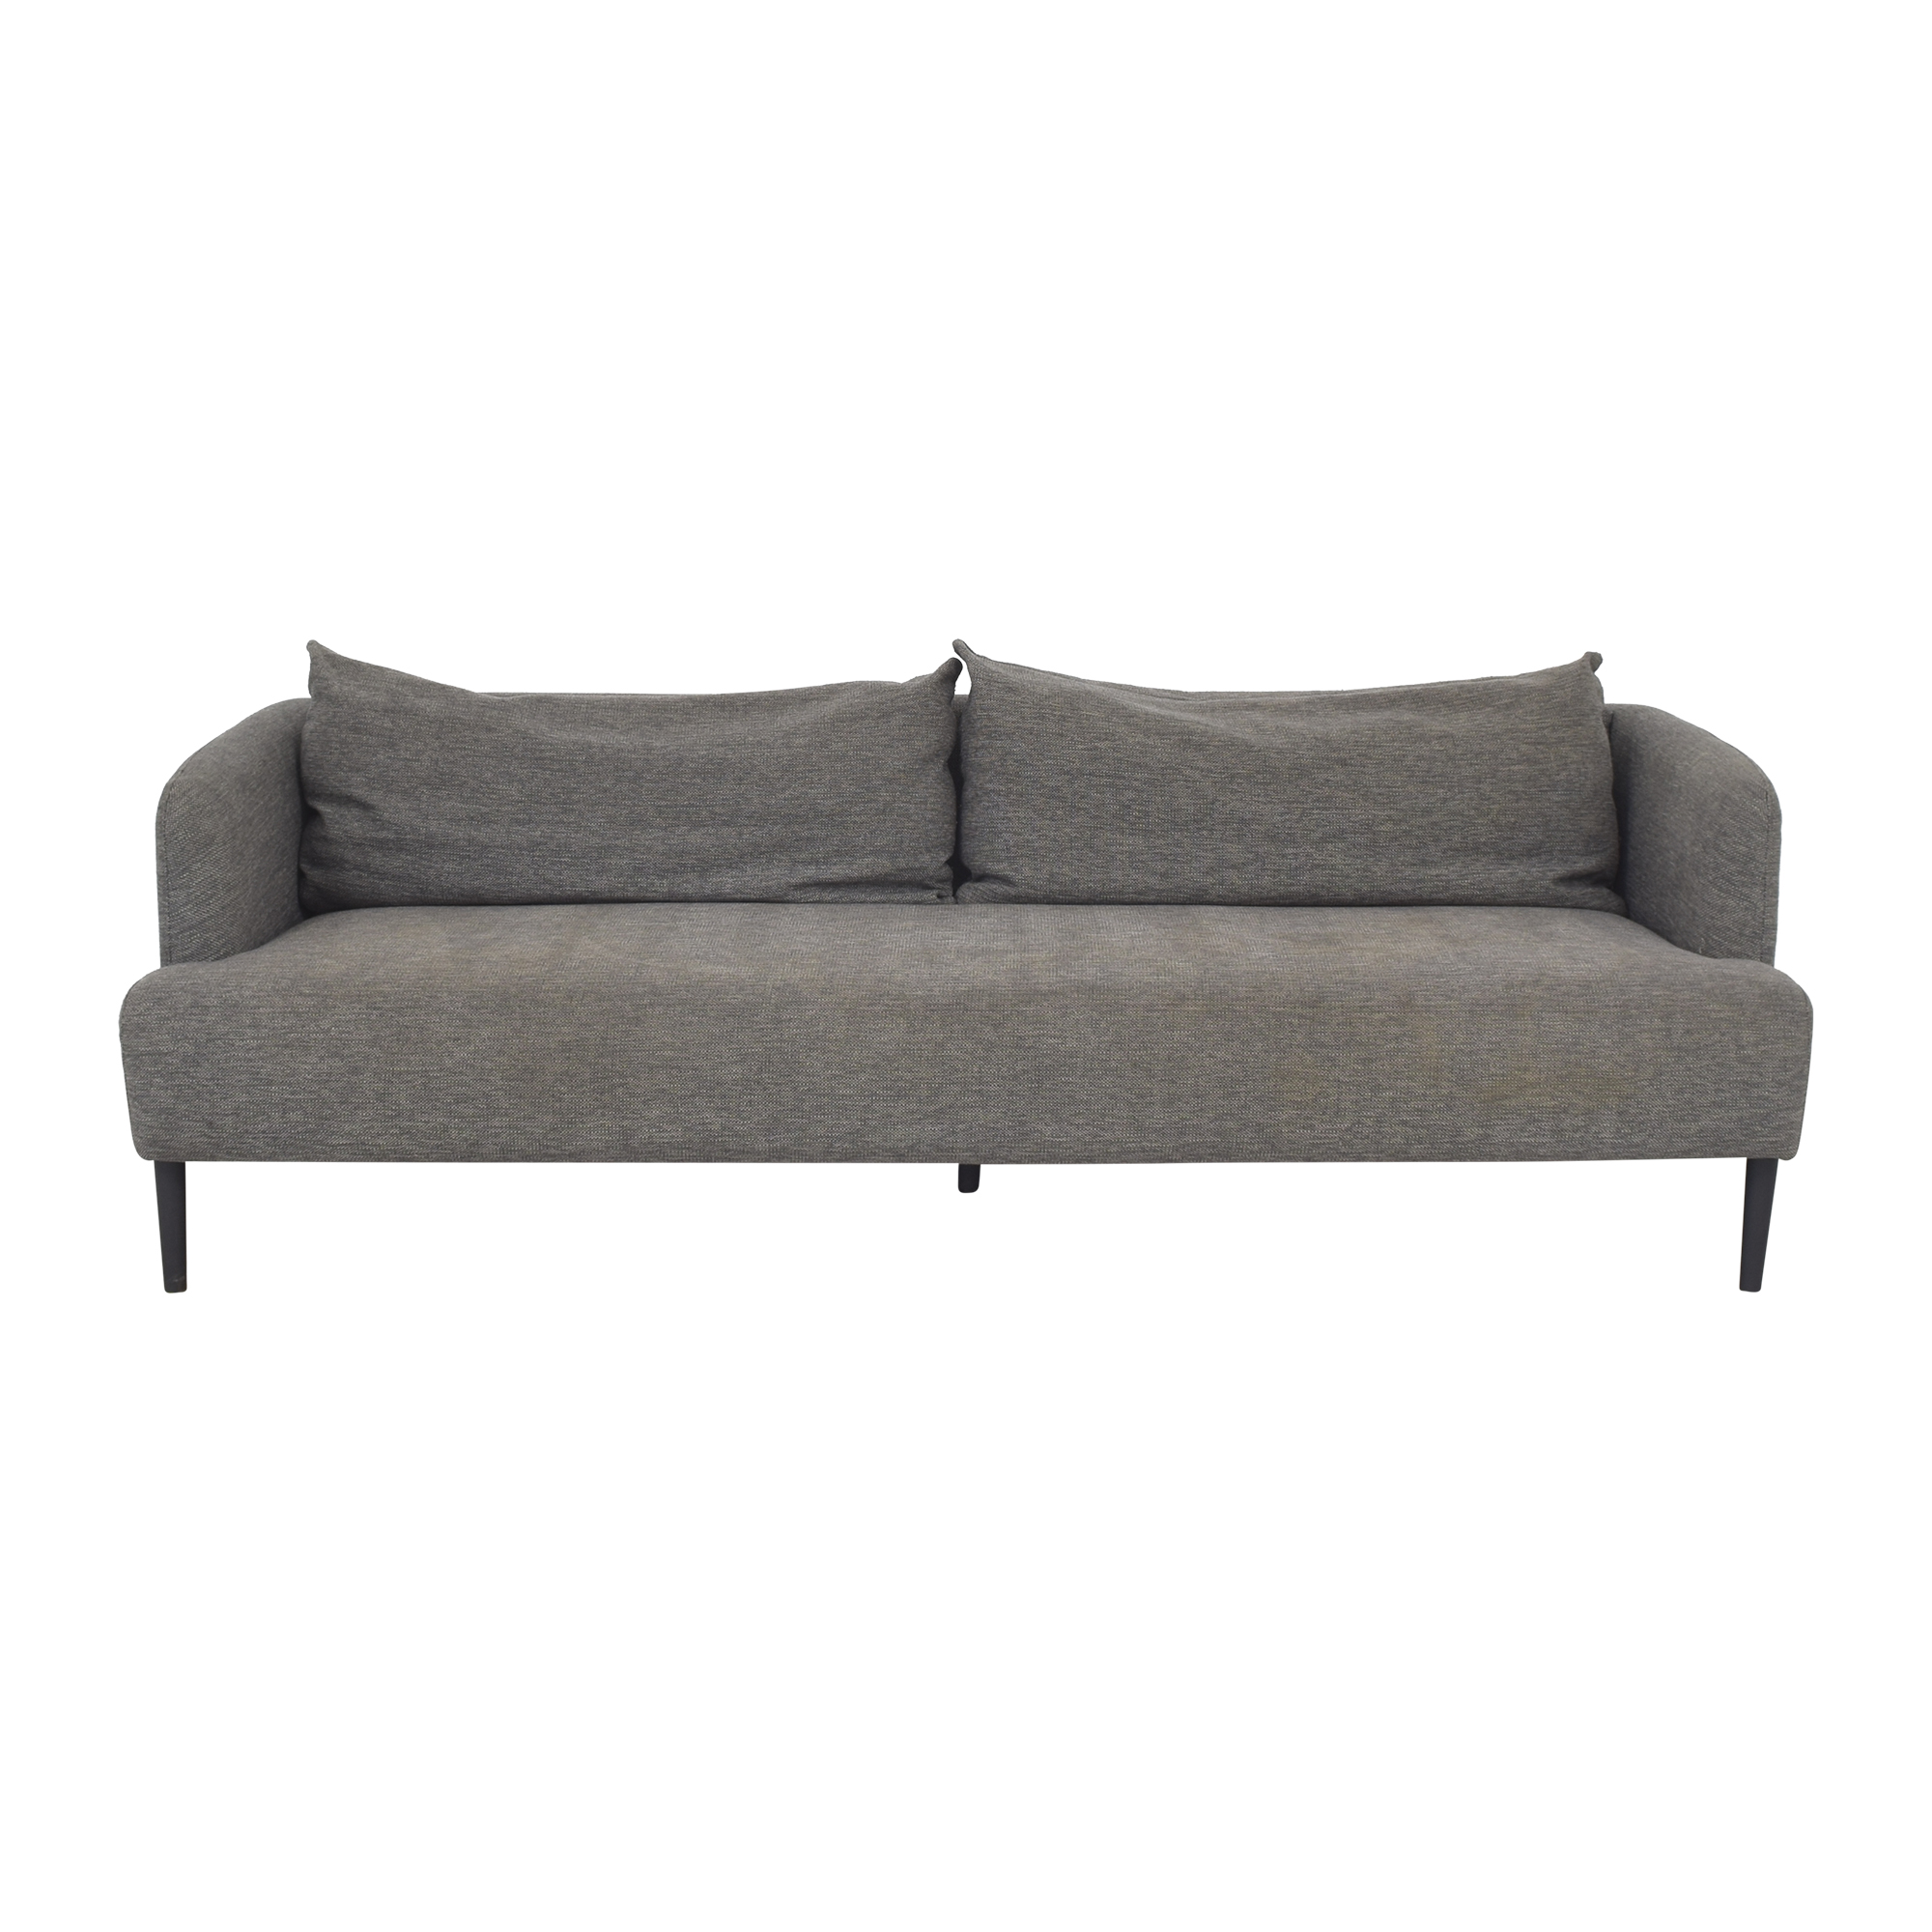 CB2 CB2 Ronan Bench Cushion Sofa Classic Sofas